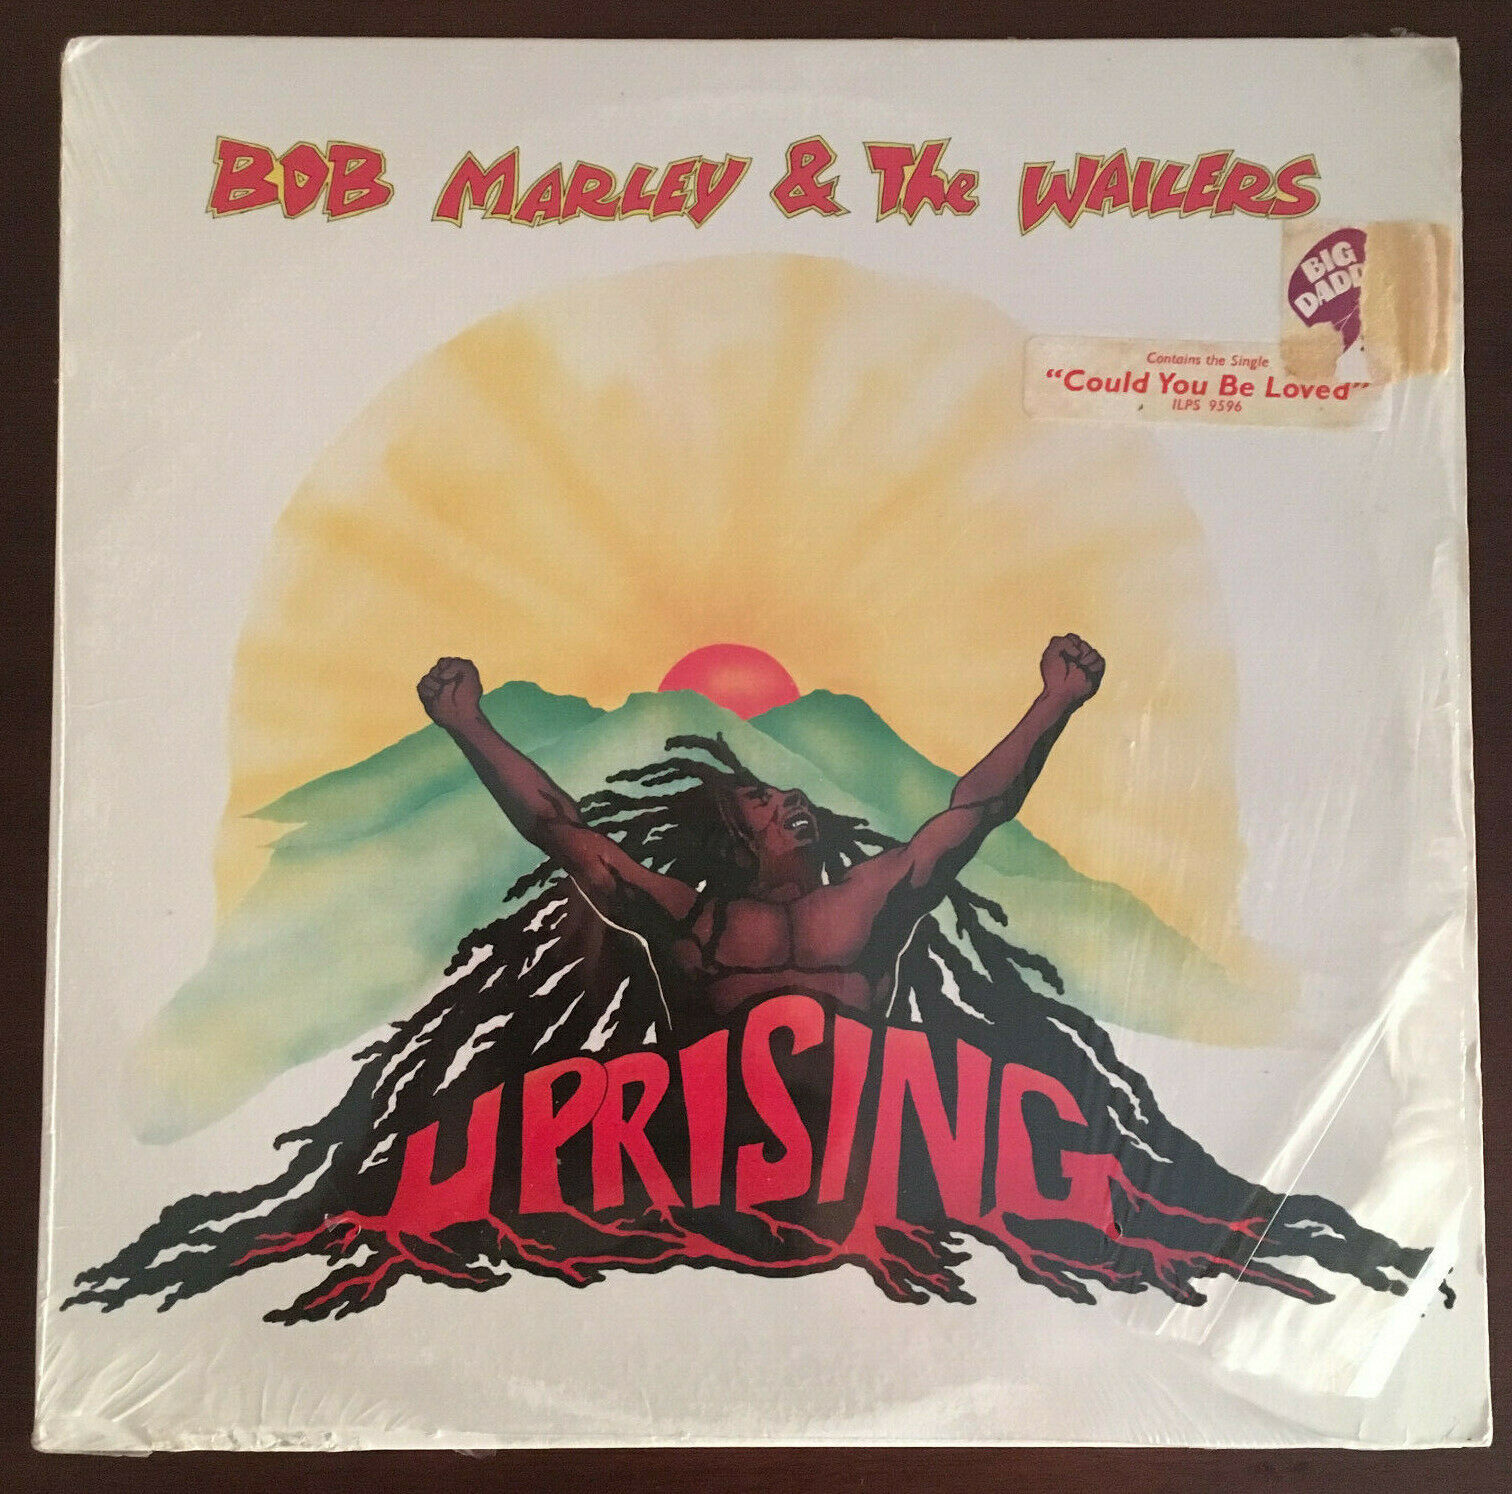 Bob Marley & The Wailers - Uprising 1st Press Vinyl US 1980 LP In Shrink Org EX